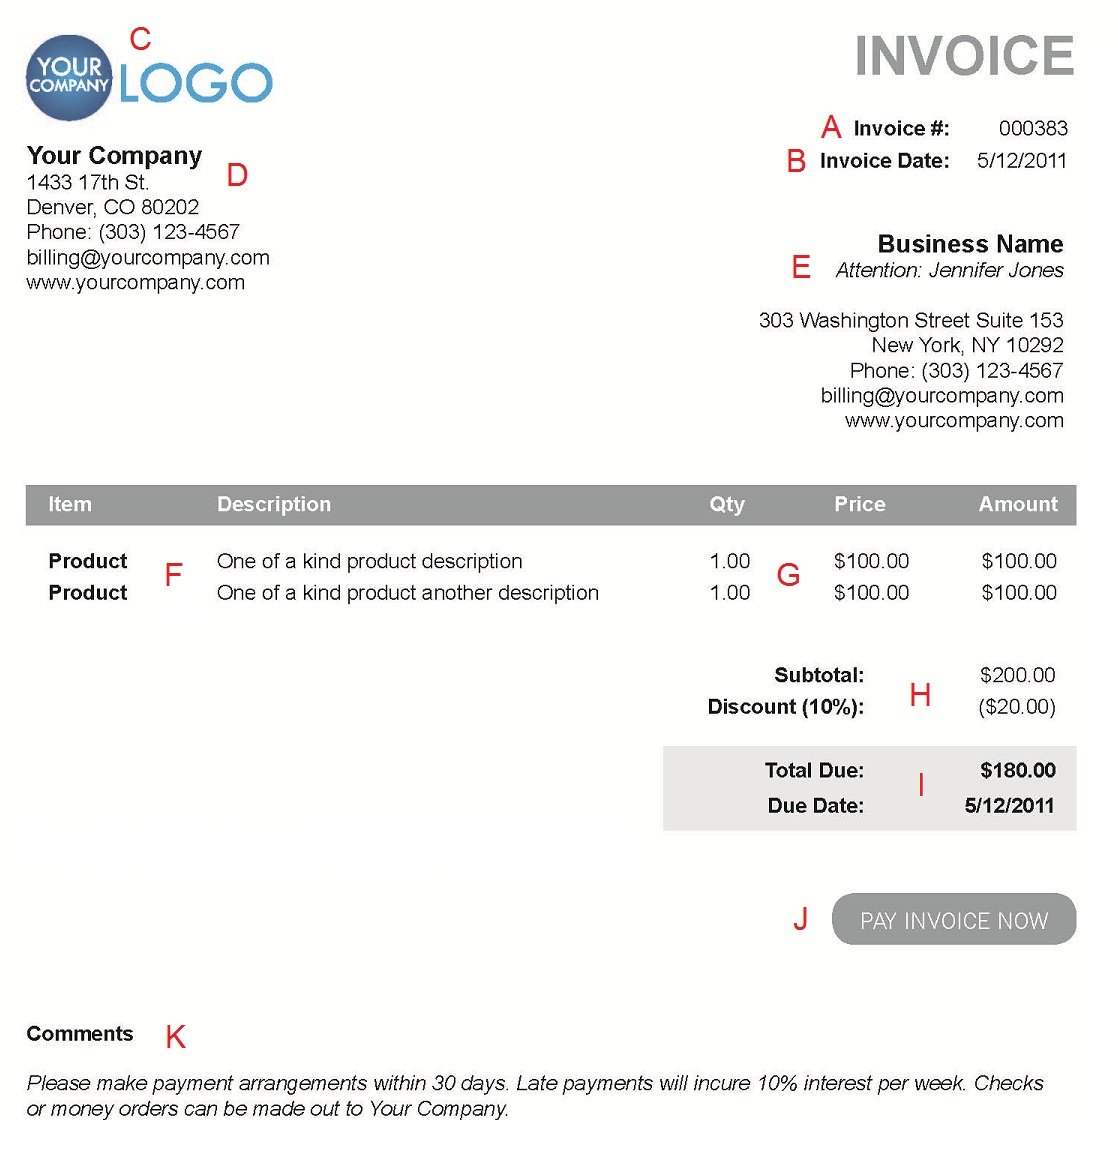 Pigbrotherus  Inspiring The  Different Sections Of An Electronic Payment Invoice With Goodlooking A  With Beauteous Finance Invoice Also Invoice Format For Export In Addition Invoice Request Form Template And Free Invoice Management Software As Well As Invoice To You Additionally Best Ipad Invoice App From Paysimplecom With Pigbrotherus  Goodlooking The  Different Sections Of An Electronic Payment Invoice With Beauteous A  And Inspiring Finance Invoice Also Invoice Format For Export In Addition Invoice Request Form Template From Paysimplecom